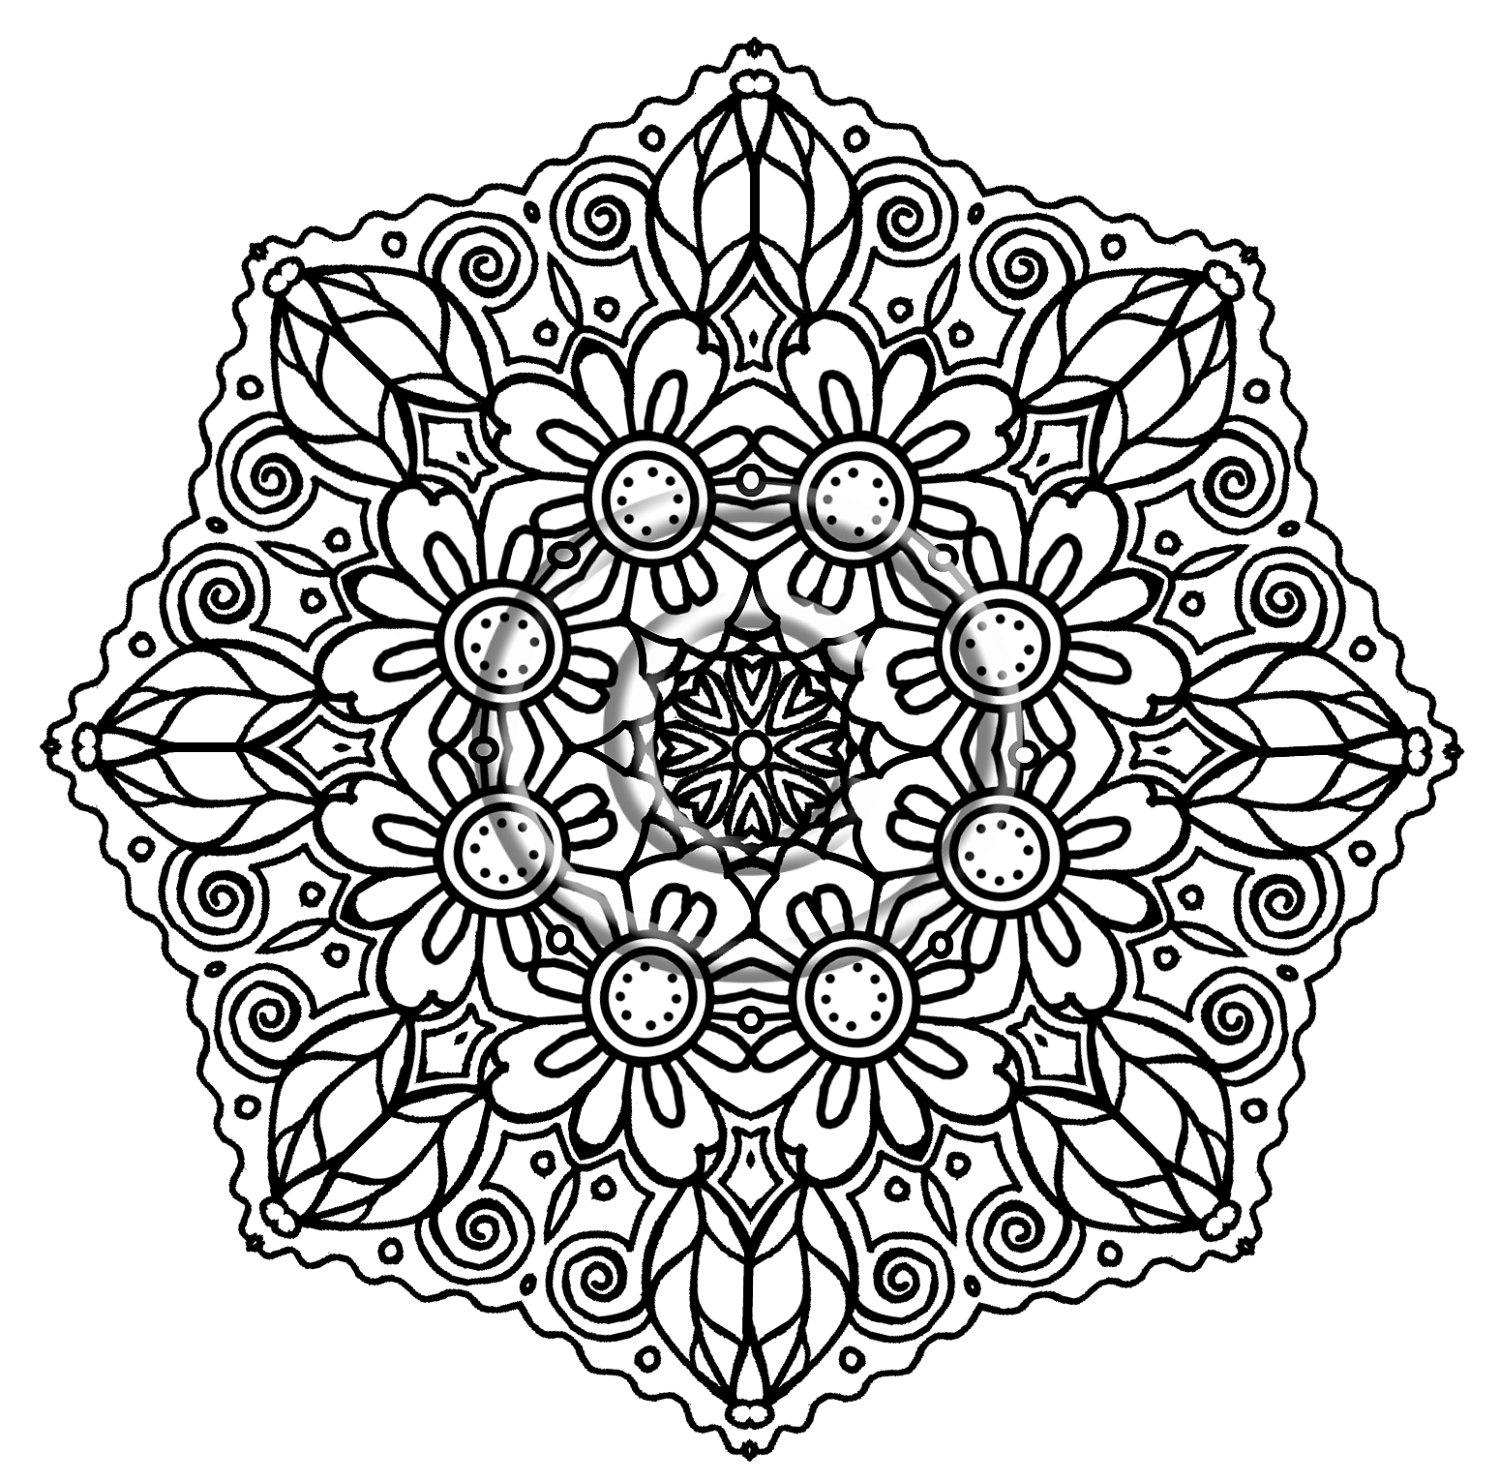 flower pattern coloring pages flower coloring pages for adults best coloring pages for coloring flower pattern pages